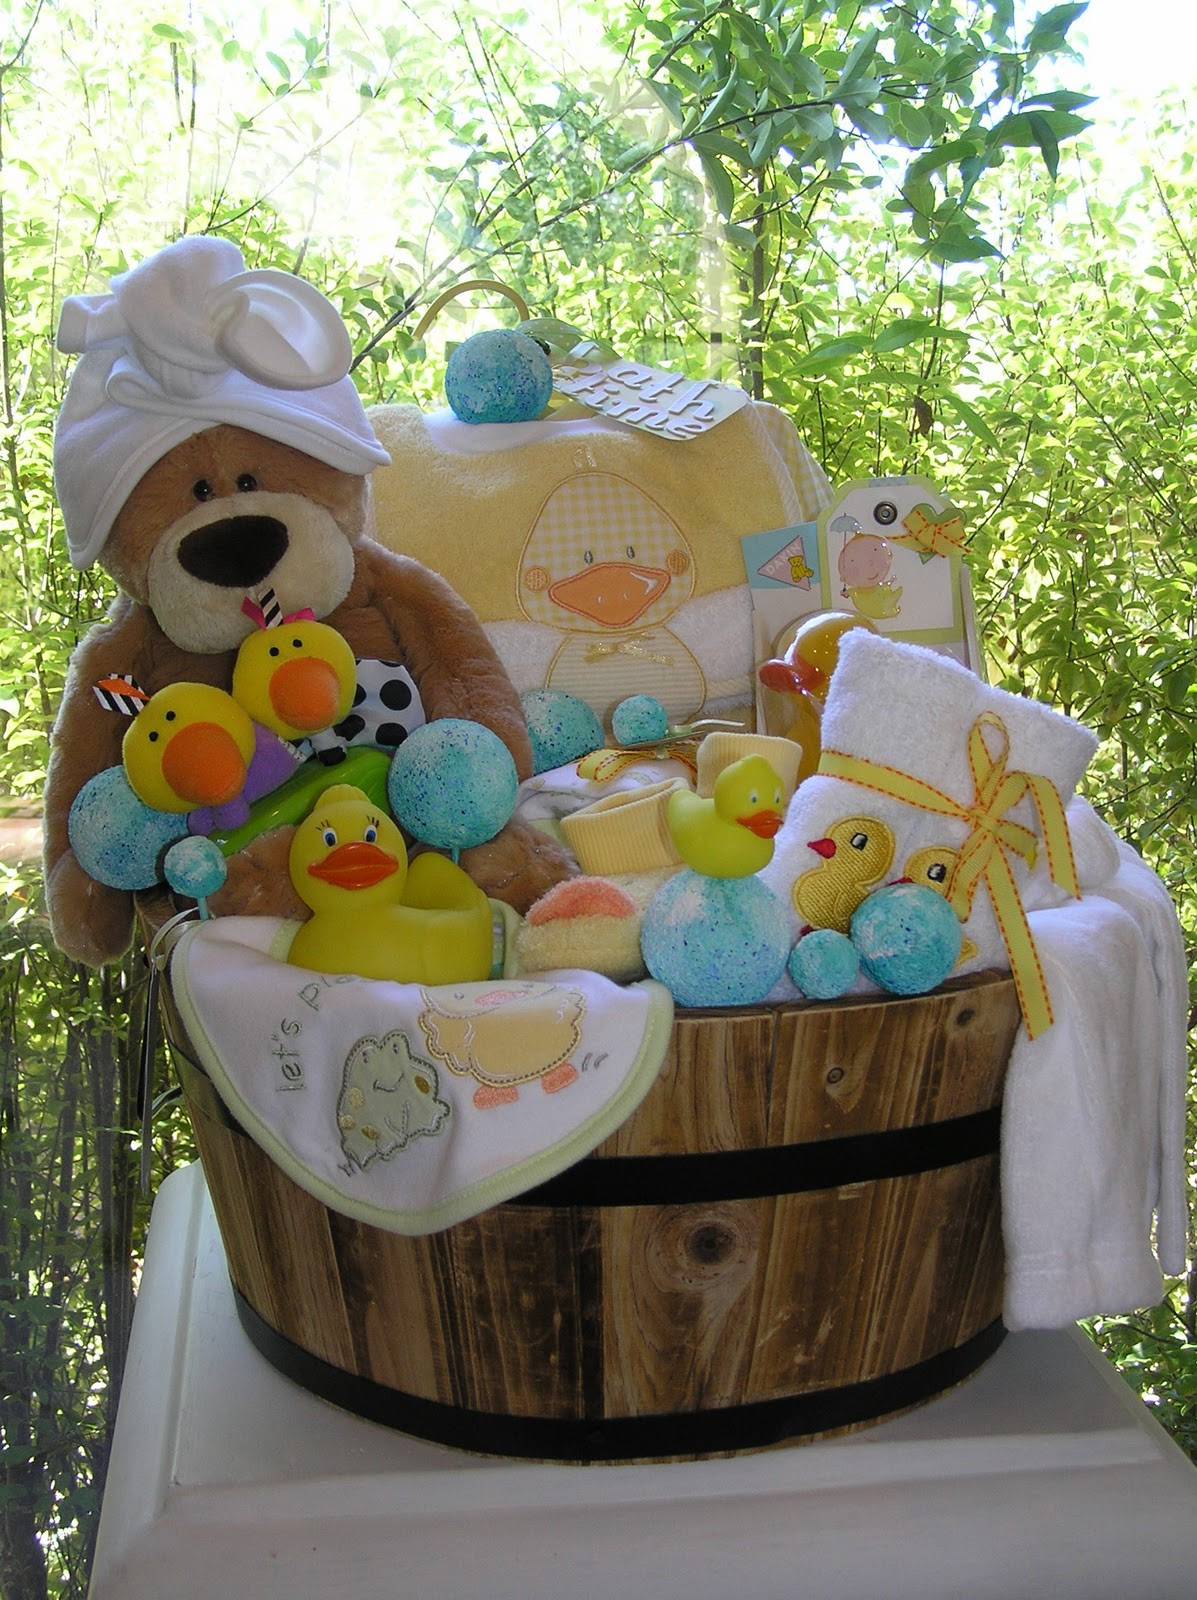 Baby Boy Gift Basket Ideas  White Horse Relics Unique Themed Baby Gift Baskets